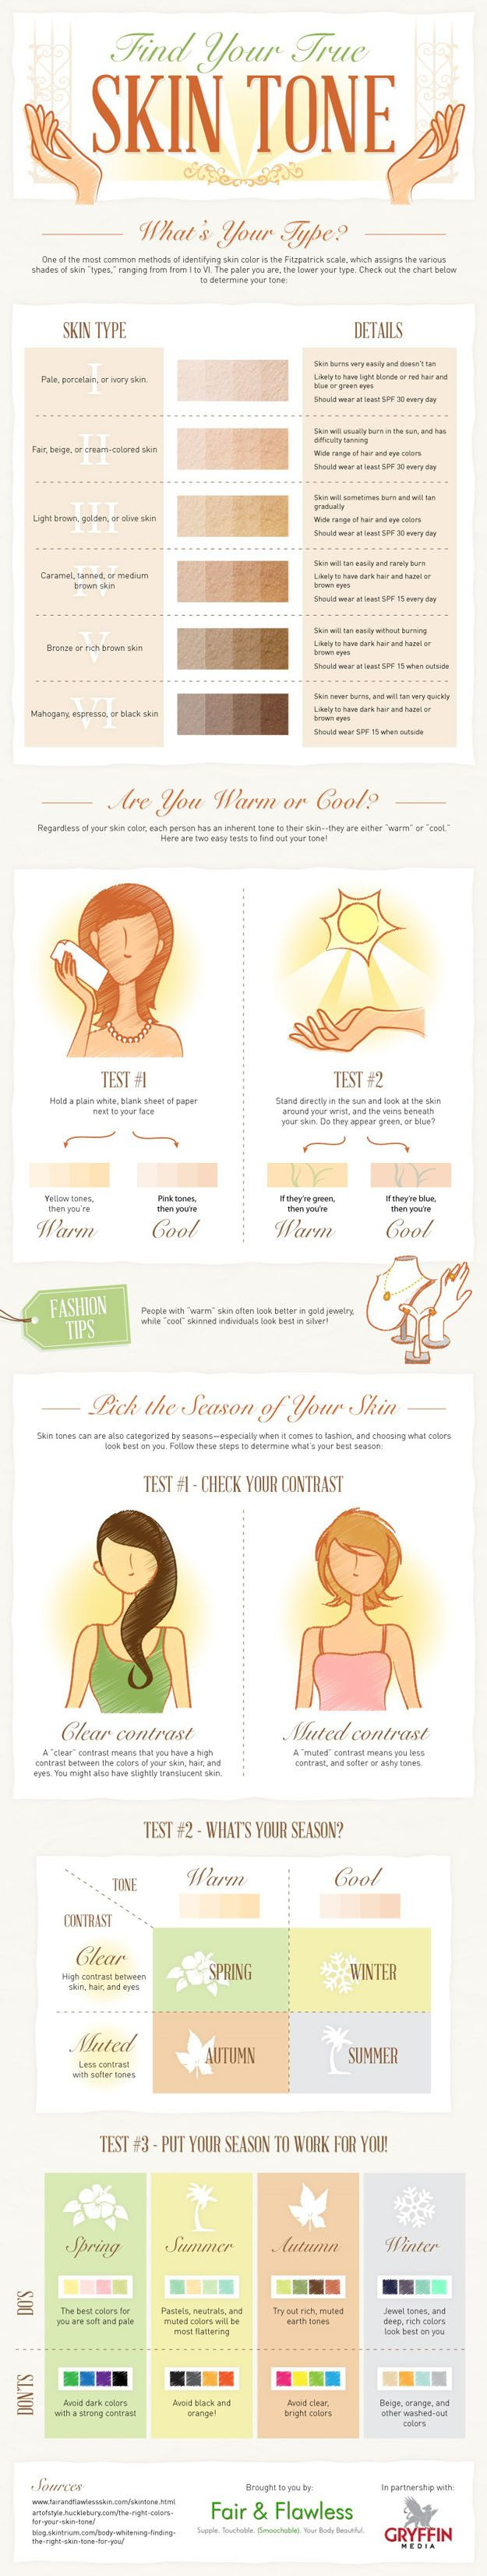 How to Find Your Skin Tone | The Best Chart & Makeup Tips & Tricks by Makeup Tutorials http://makeuptutorials.com/makeup-tutorials-beauty-tips/: